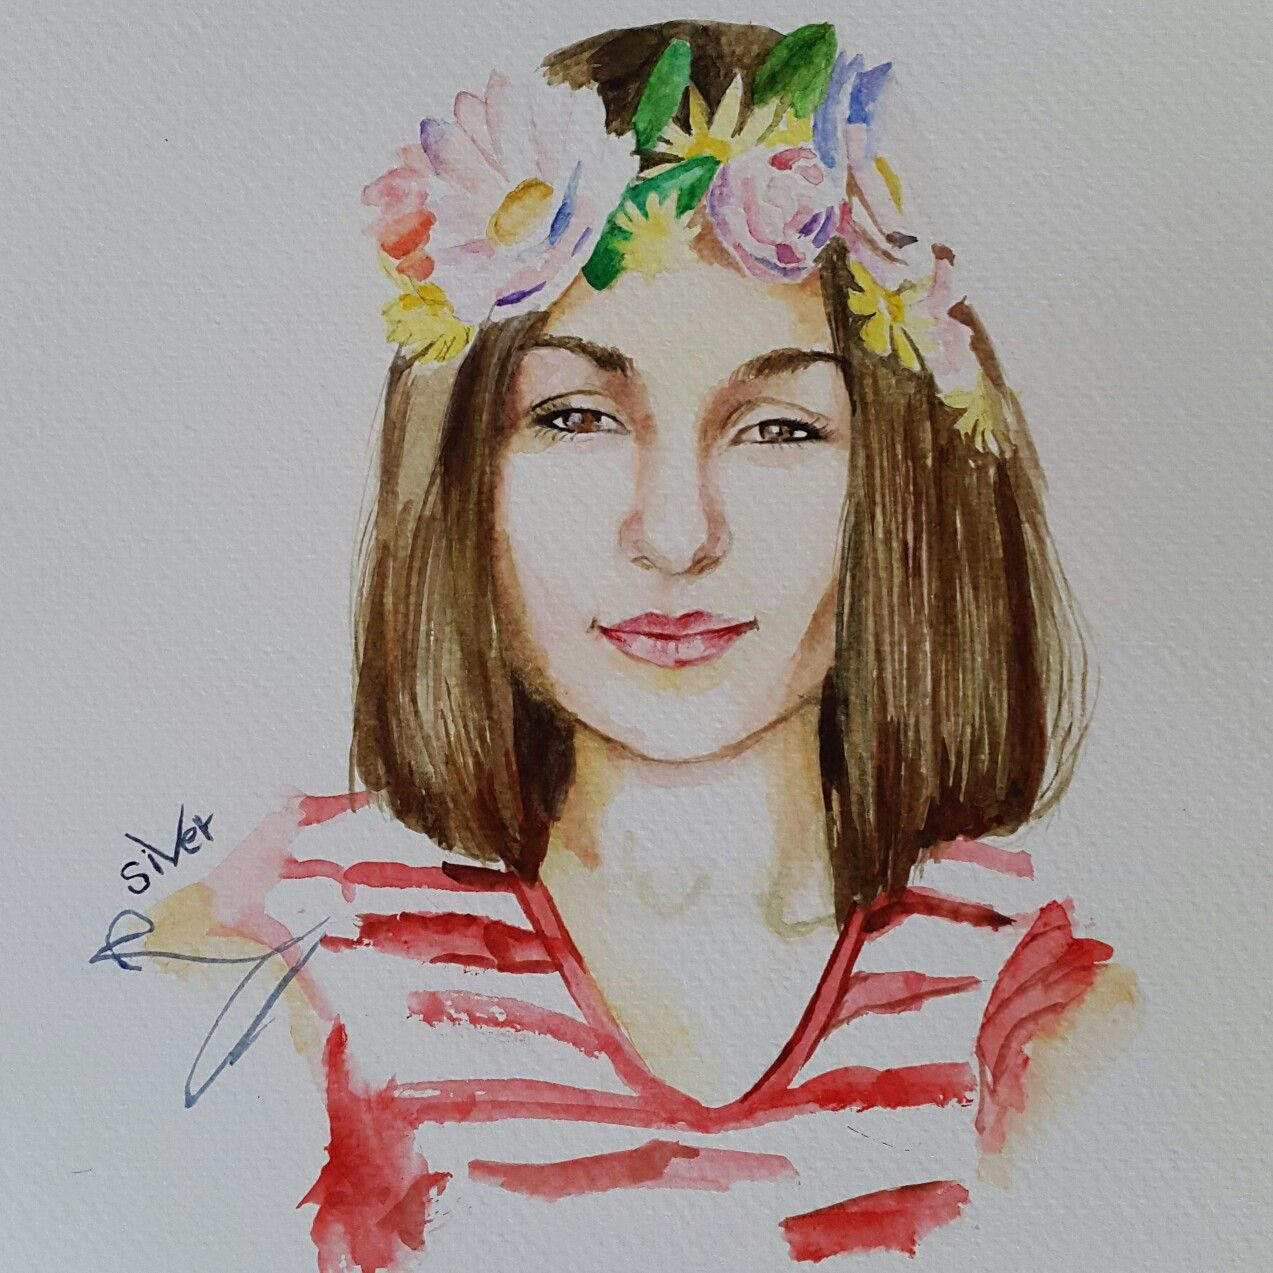 Watercolor Portrait Girl Snapchat Filter Painting By Siver Serwer